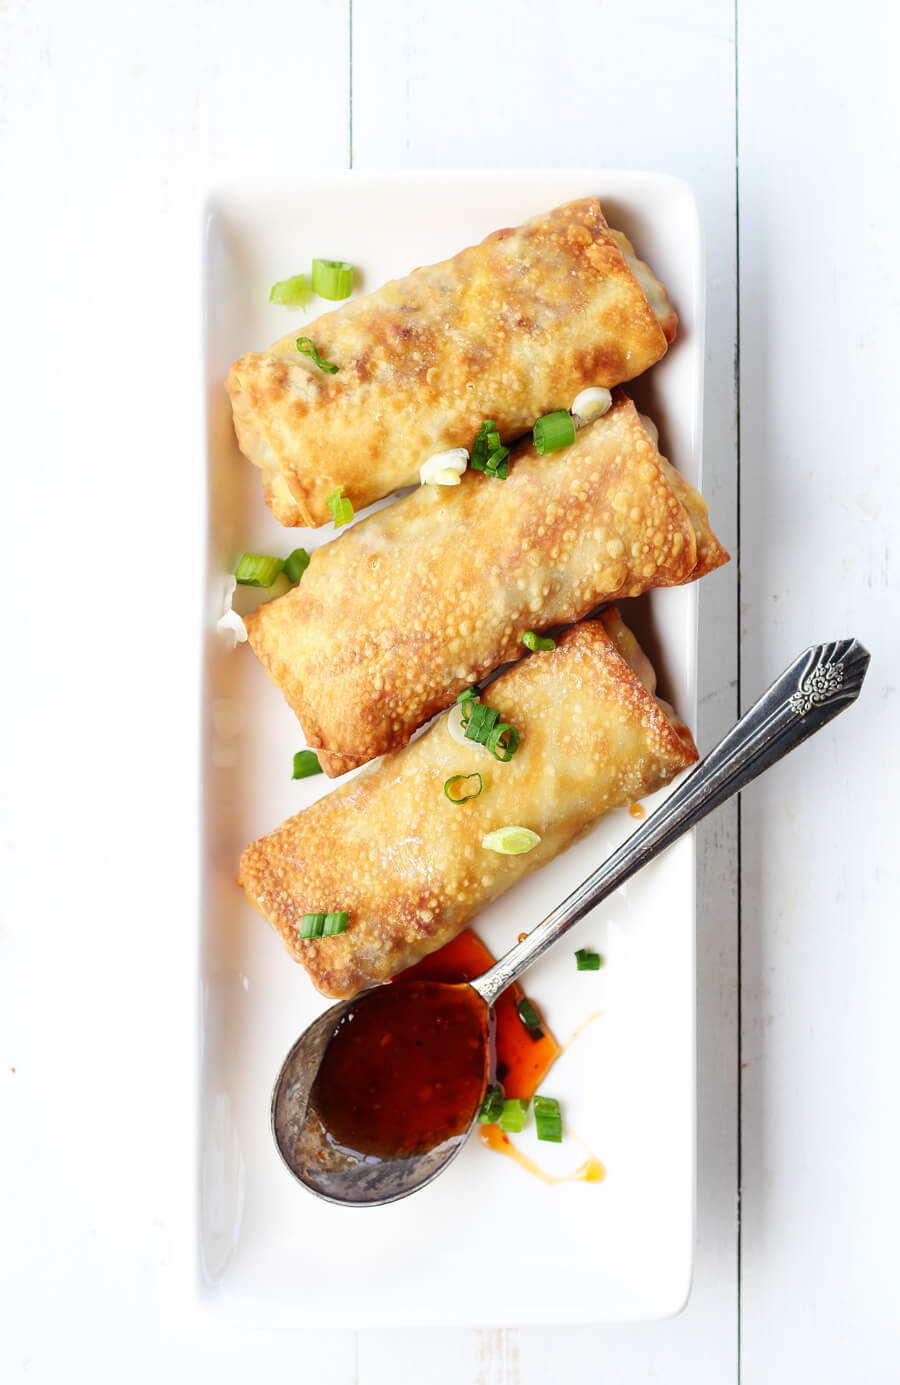 Learn how to make your own egg rolls at home...in an air fryer. This easy recipe is so delicious, with light and crispy crust and tender and savory on the inside.#eggrolls #airfryer